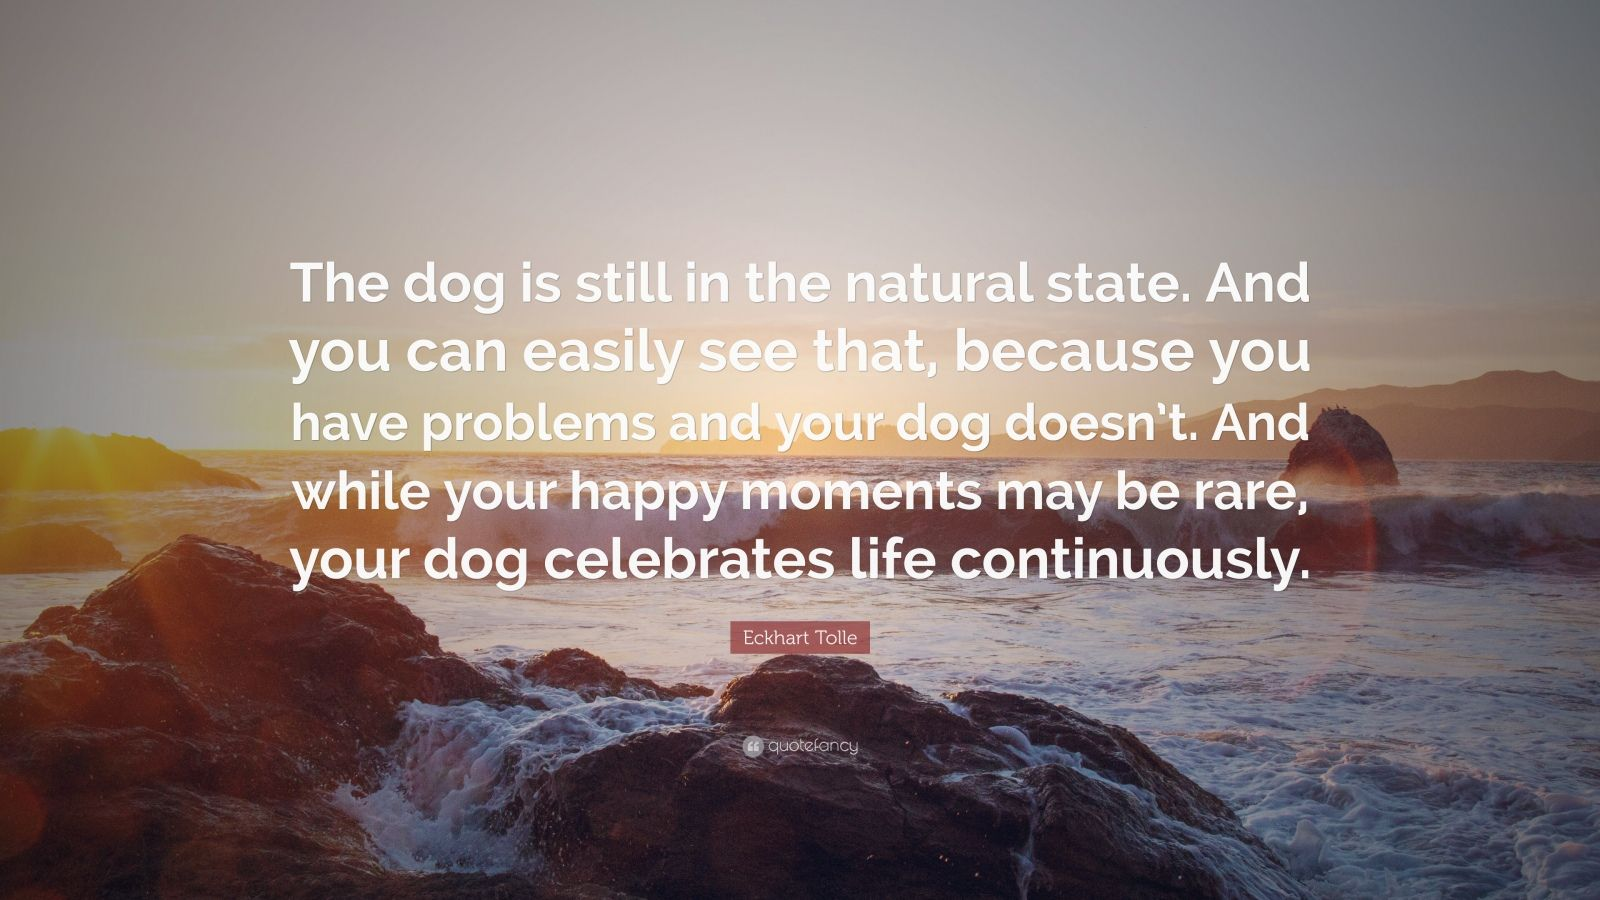 "Eckhart Tolle Quote: ""The dog is still in the natural state. And you can easily see that, because you have problems and your dog doesn't. And while your happy moments may be rare, your dog celebrates life continuously."""